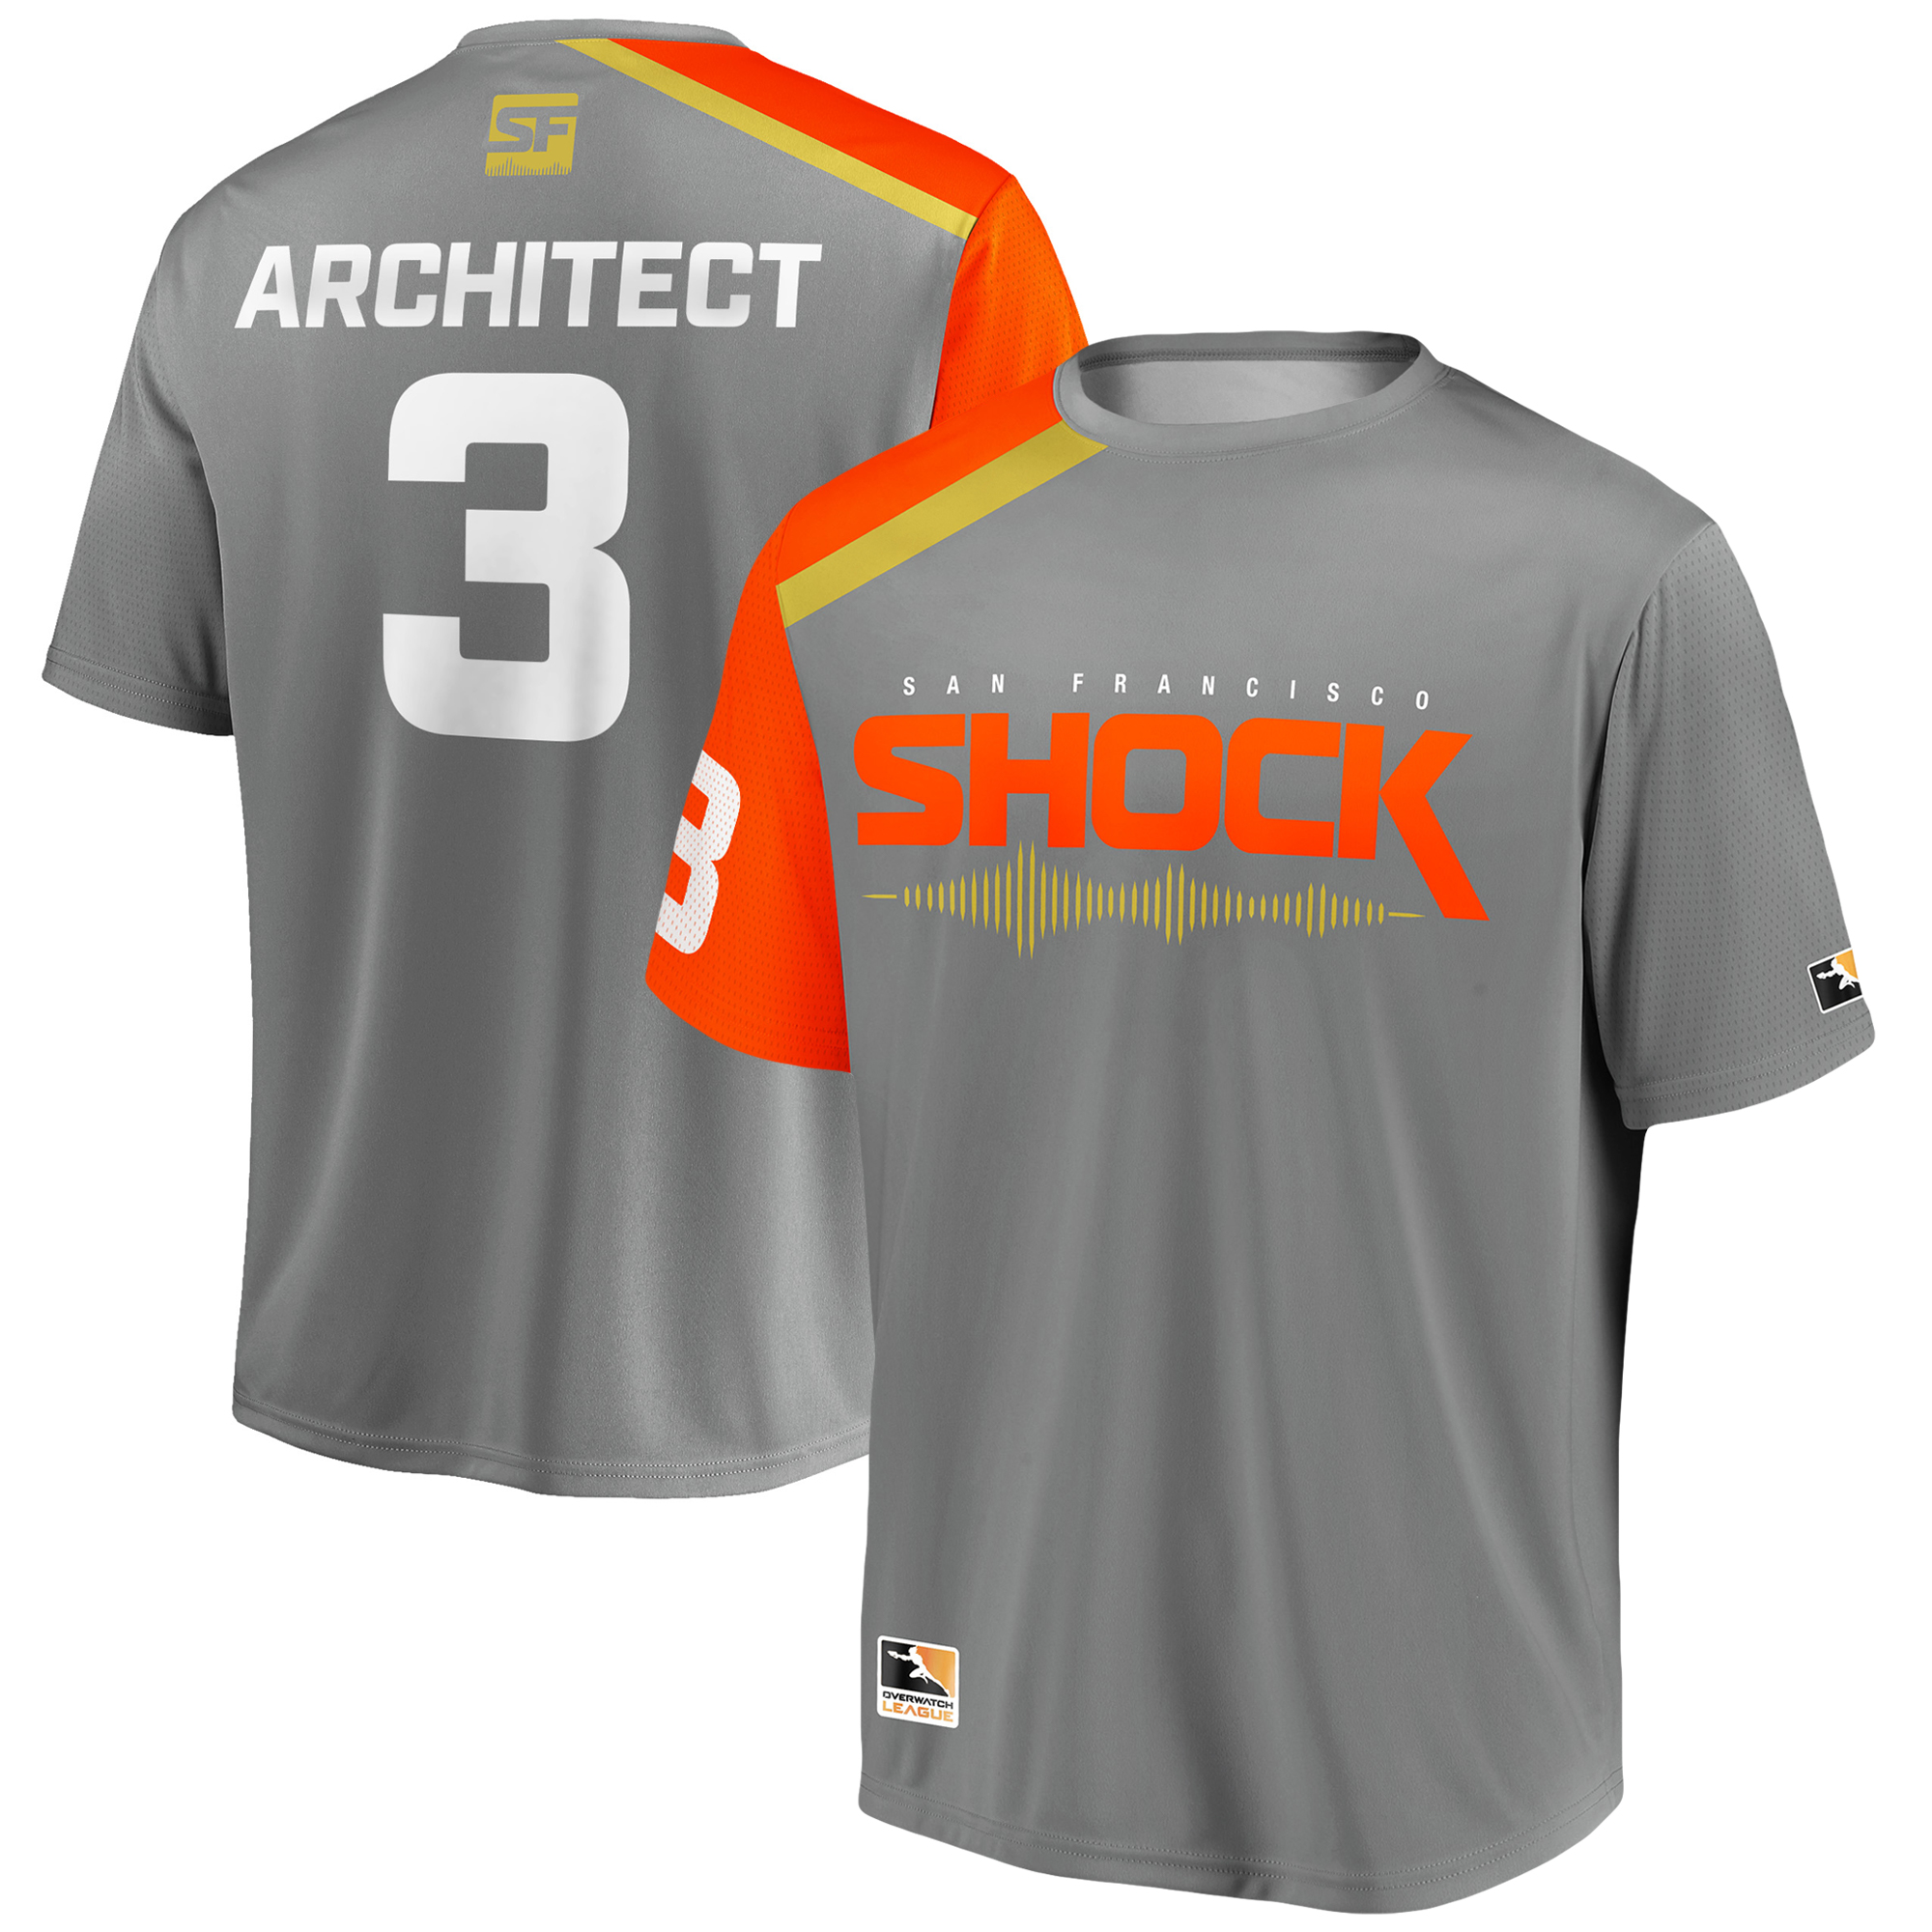 Architect San Francisco Shock Overwatch League Replica Home Jersey - Gray